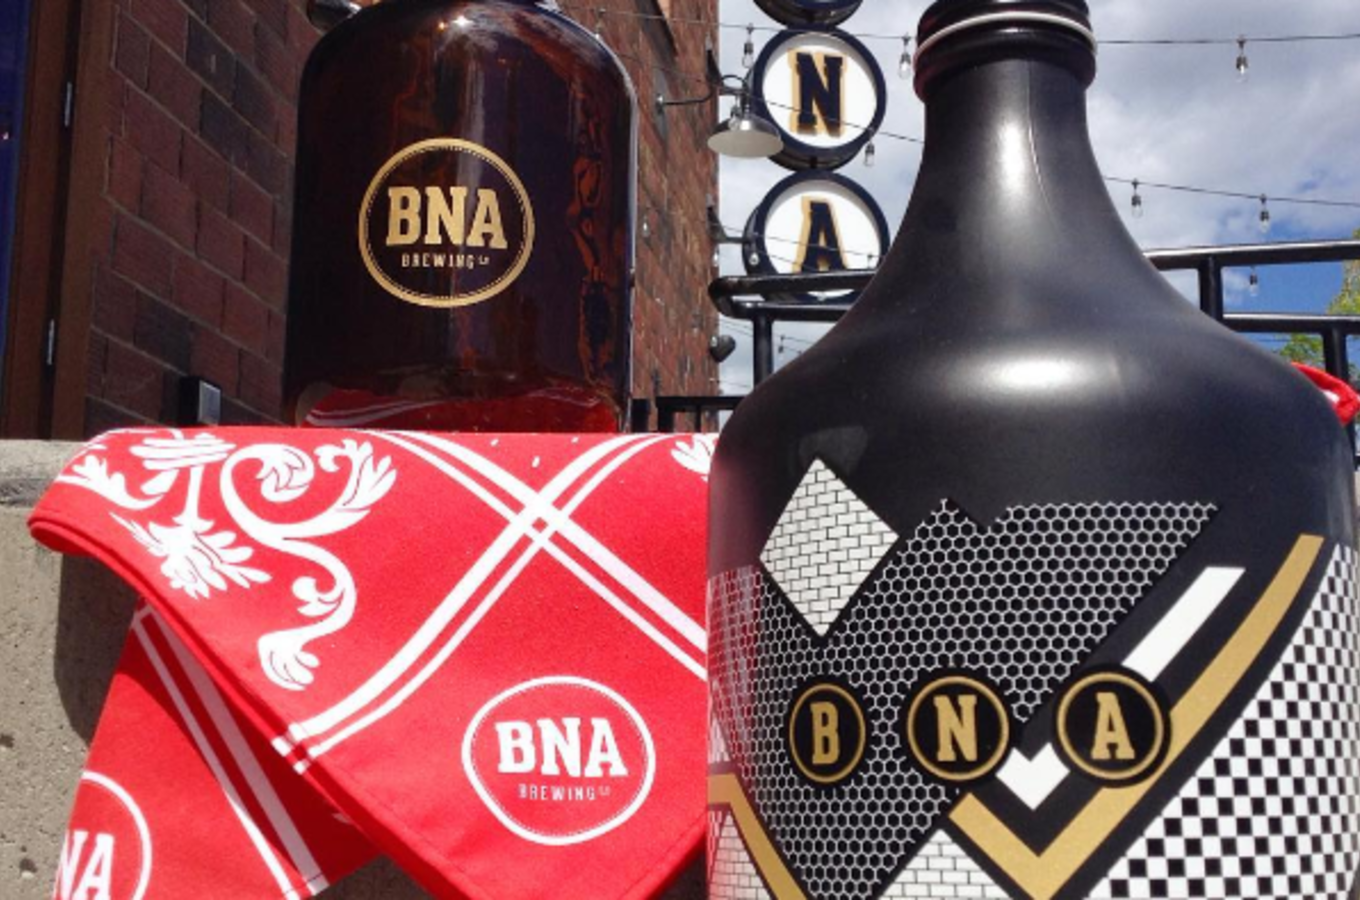 BNA Brewery Image